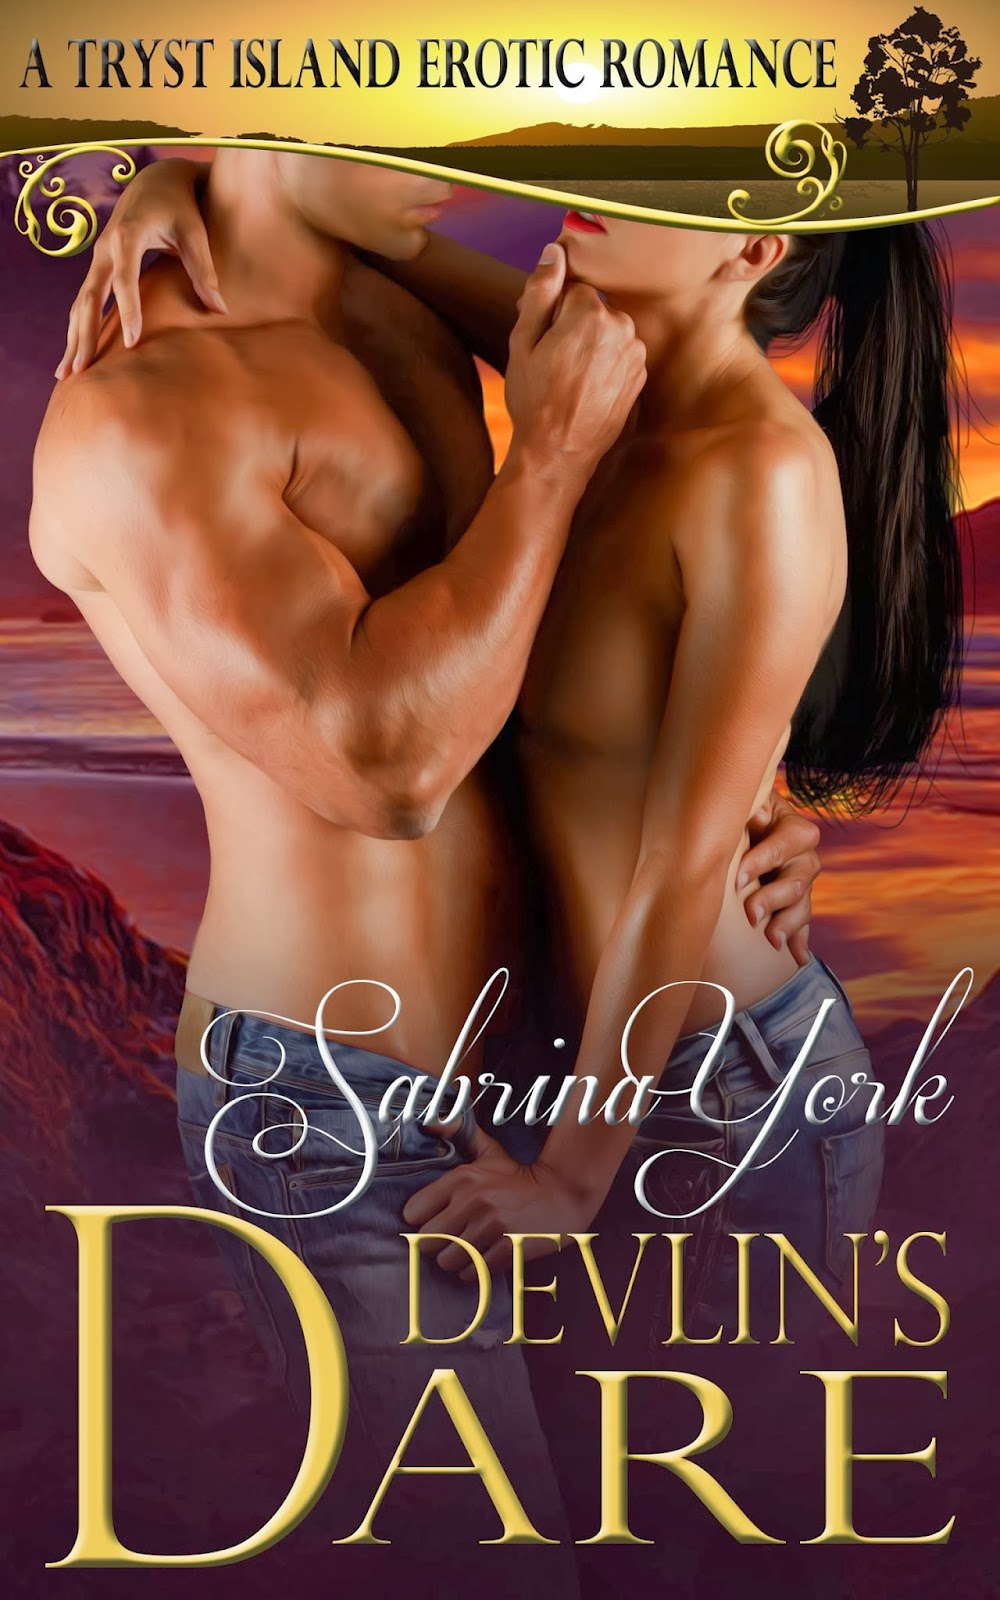 Devlin's Dare by Sabrina York